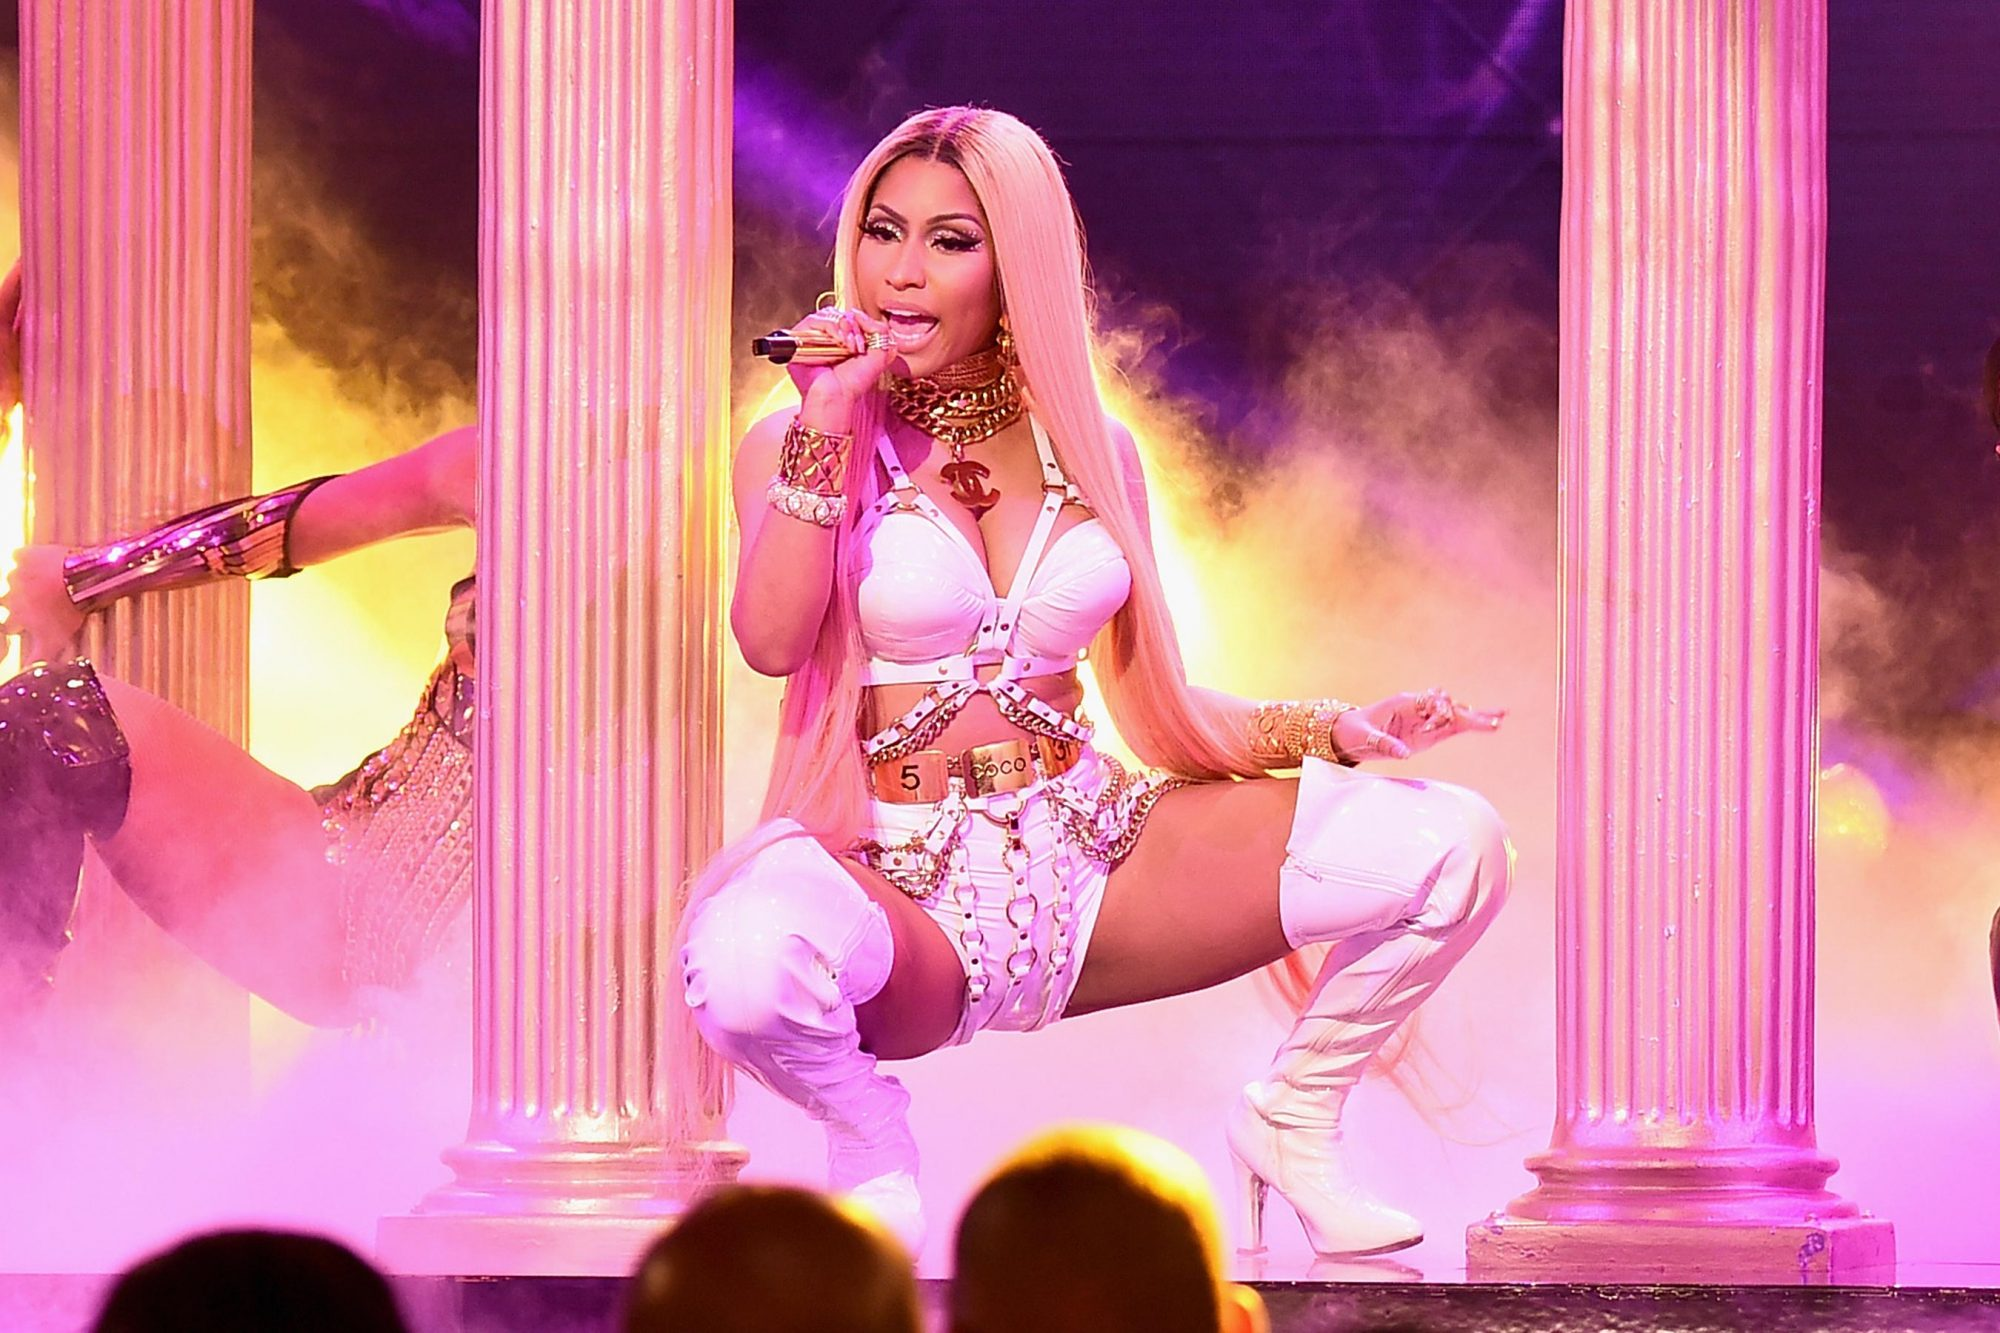 NEW YORK, NY - JUNE 26: Nicki Minaj performs on stage during the 2017 NBA Awards Live On TNT on June 26, 2017 in New York City. 27111_001 (Photo by Michael Loccisano/Getty Images for TNT )